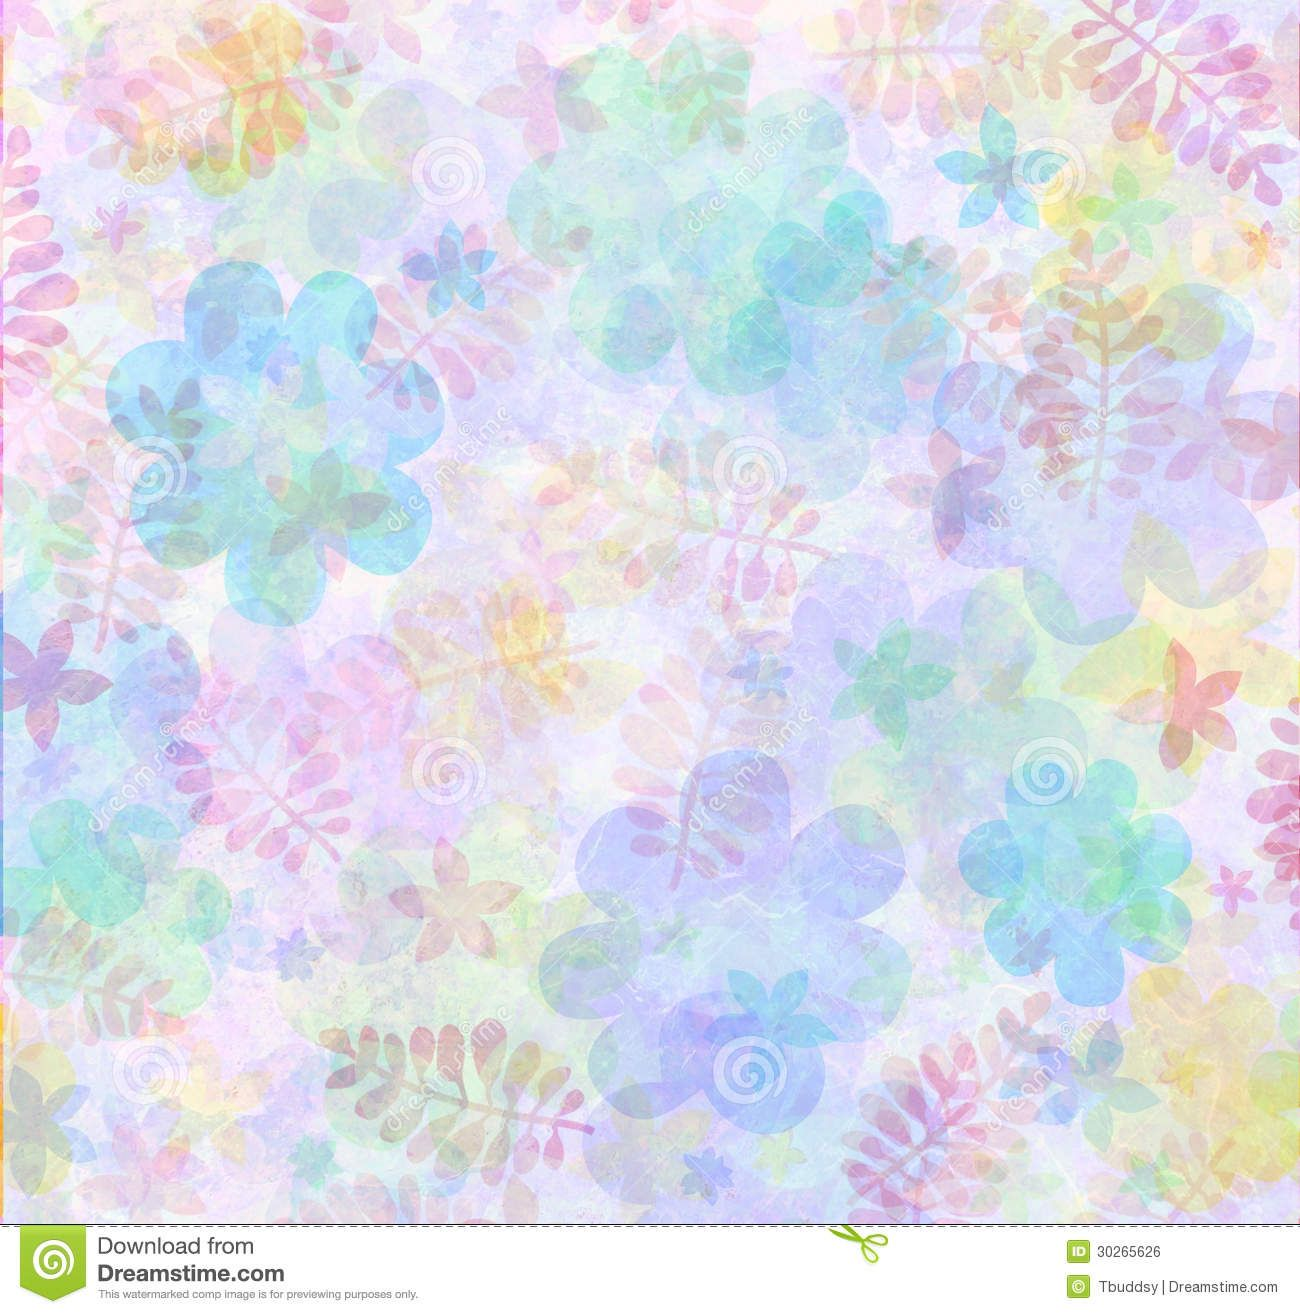 How to scrapbook yahoo - Free Pastel Scrapbook Page Backgrounds Yahoo Image Search Results